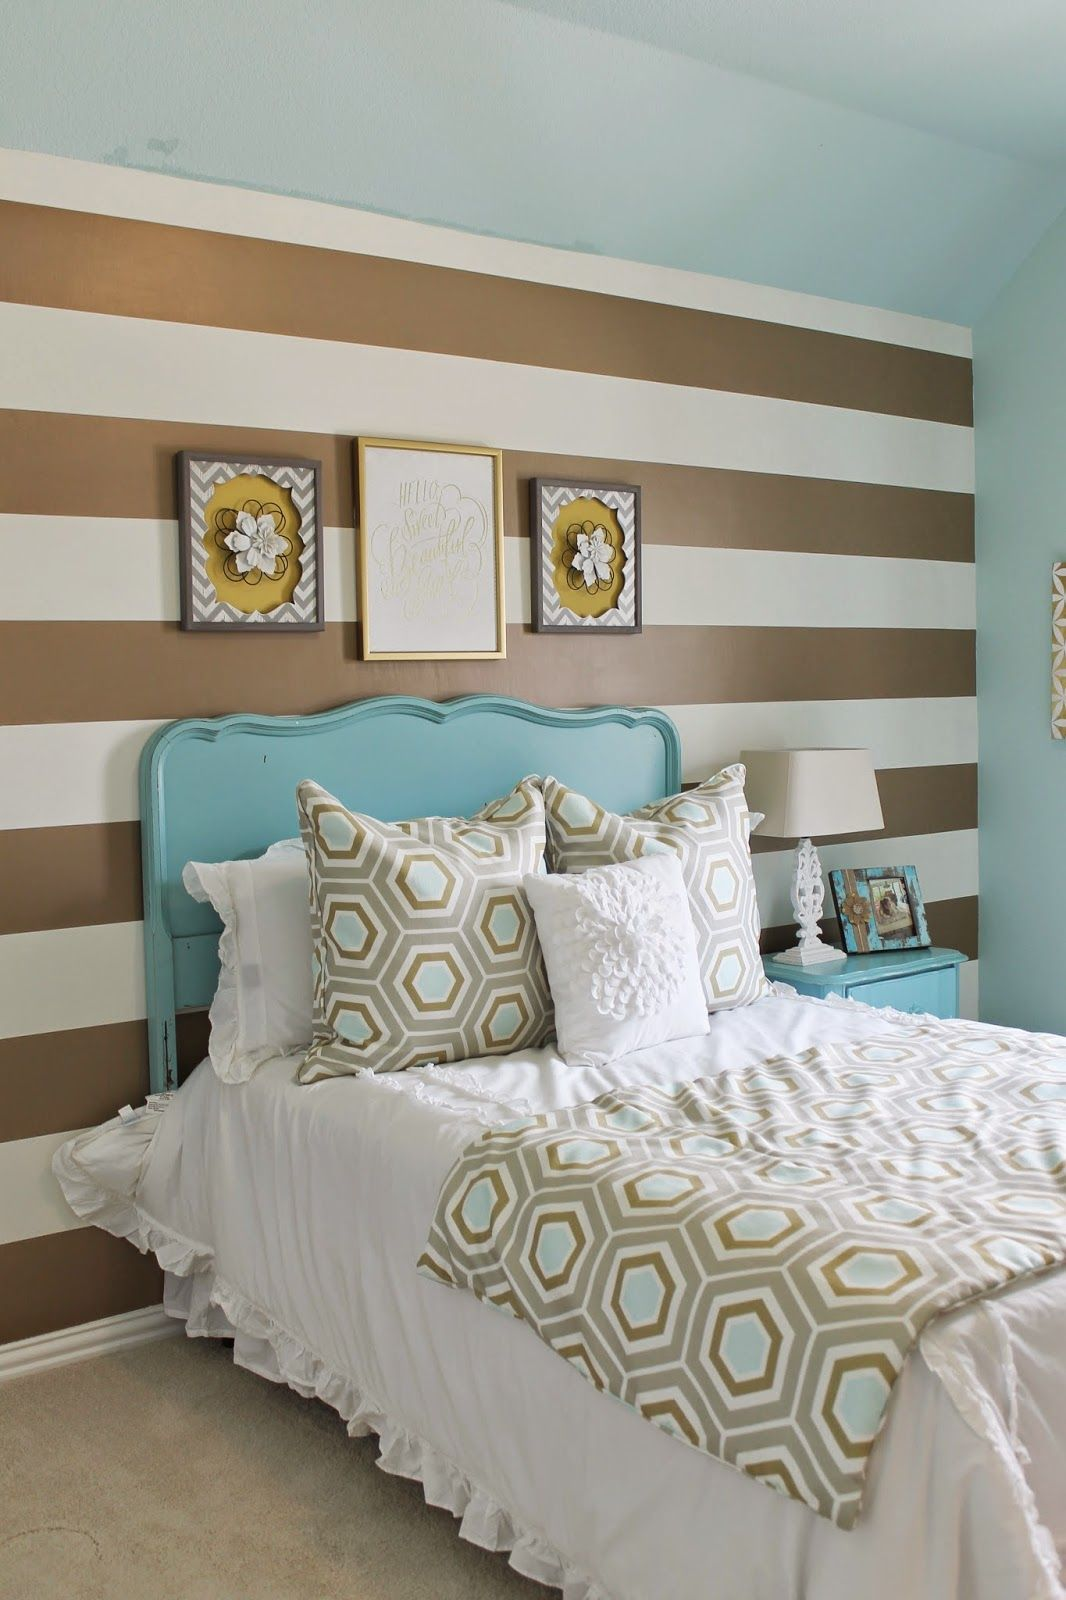 Shabby Chic Teenage Bedroom Shabby Chic Meets Glam In This Cute Teens Room Gold And Turquoise